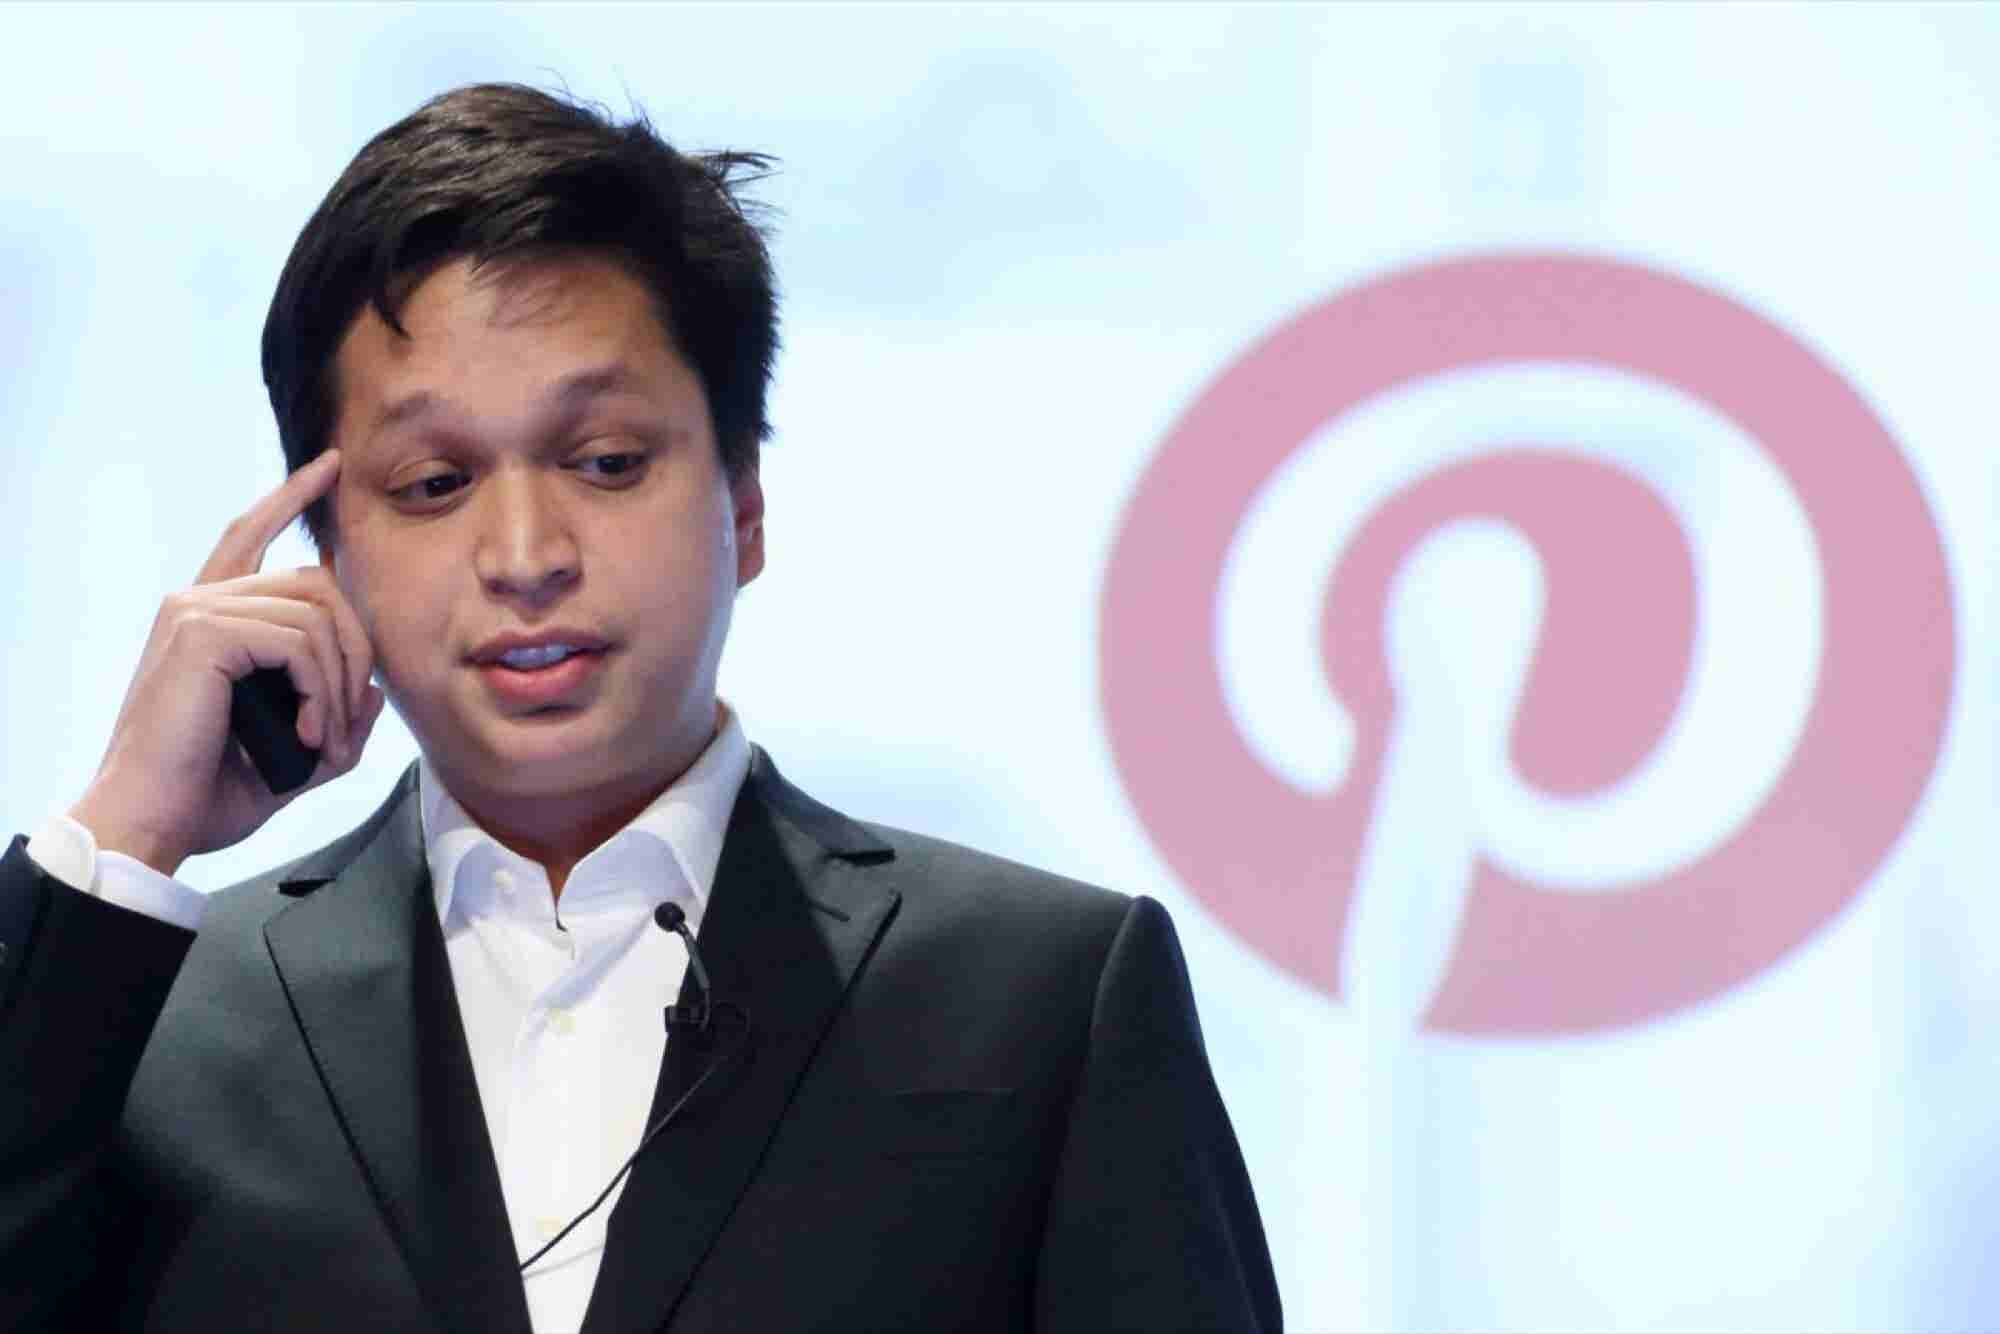 4 Success Lessons From the Entrepreneur Who Quietly Grew Pinterest Into a $12 Billion Company